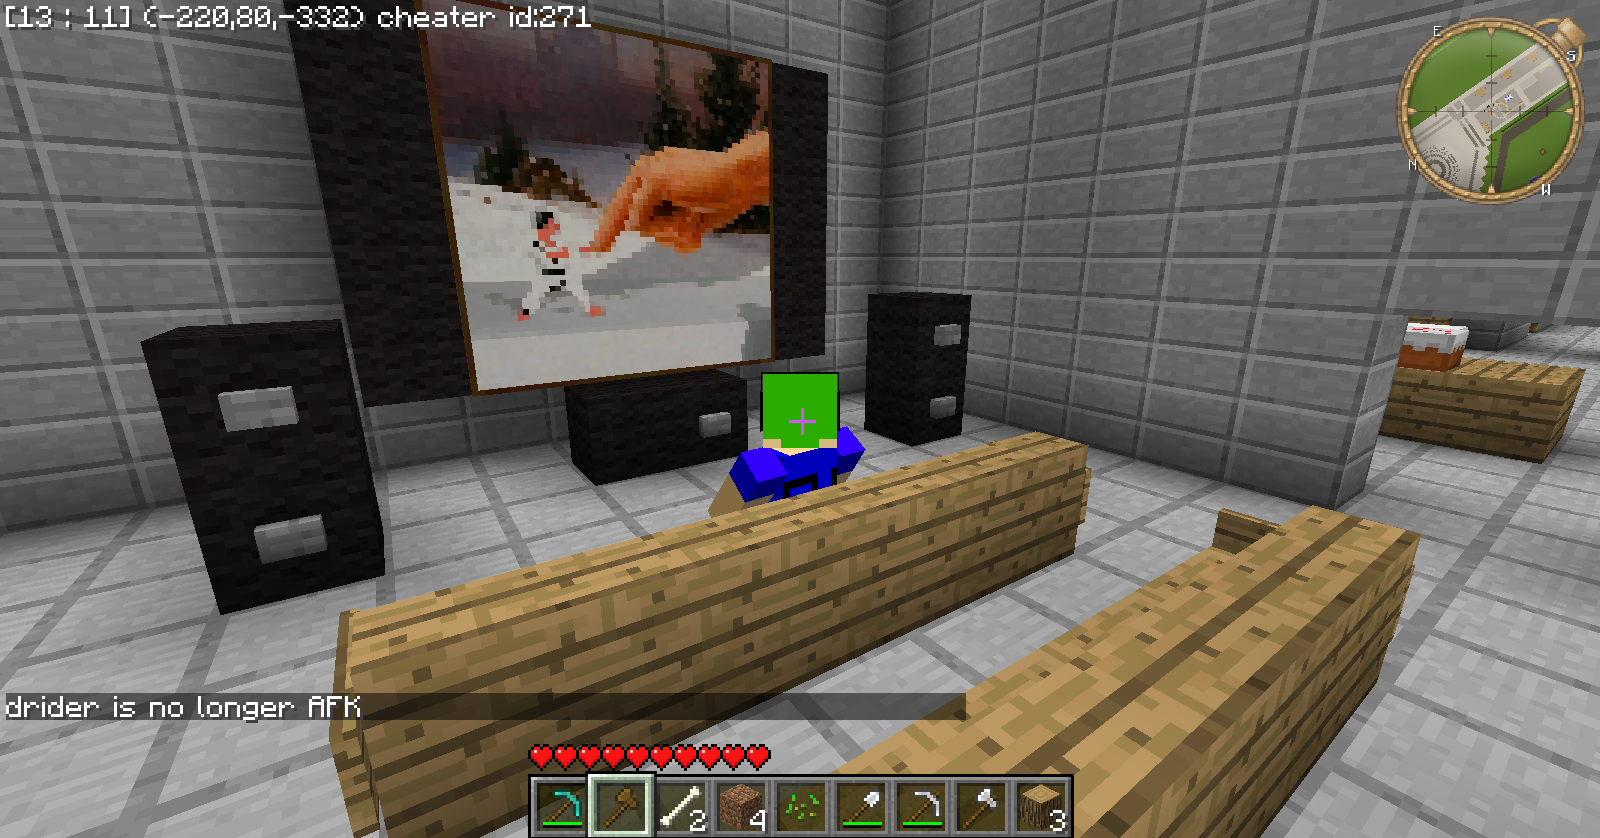 Minecraft Bedroom Ideas Xbox 360 interior design ideas (updated 29 sept 11) - screenshots - show